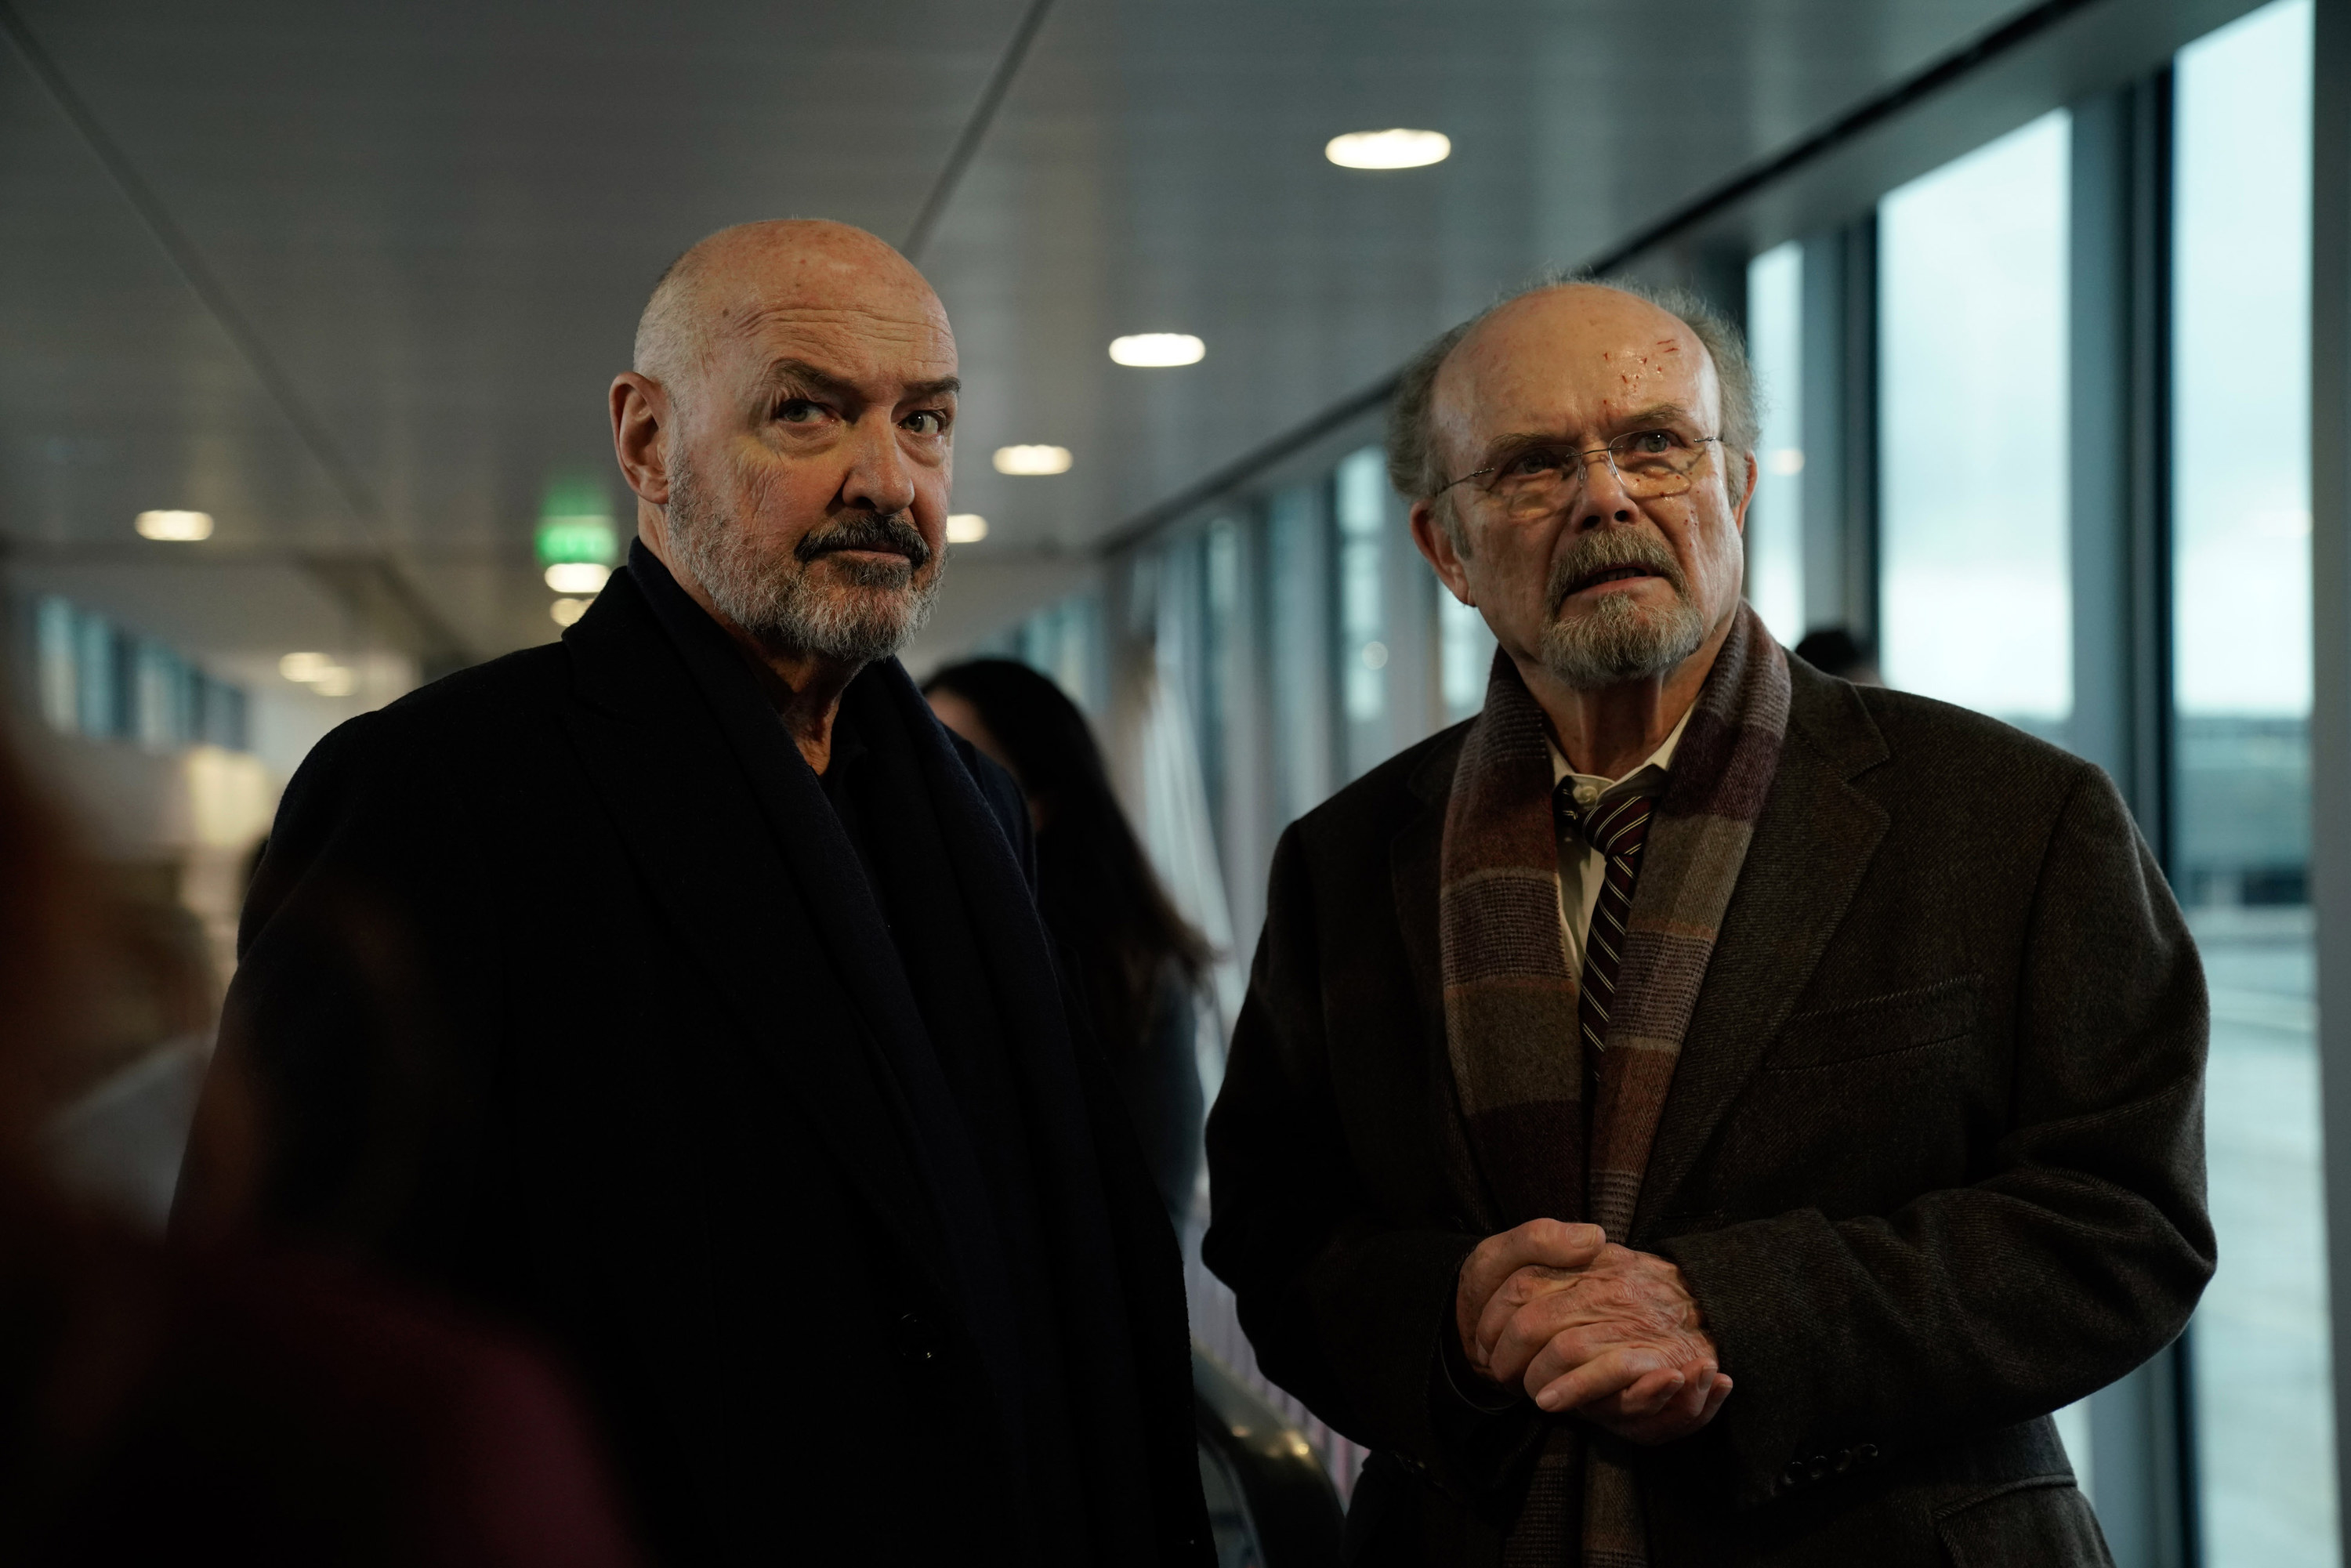 two men in an airport